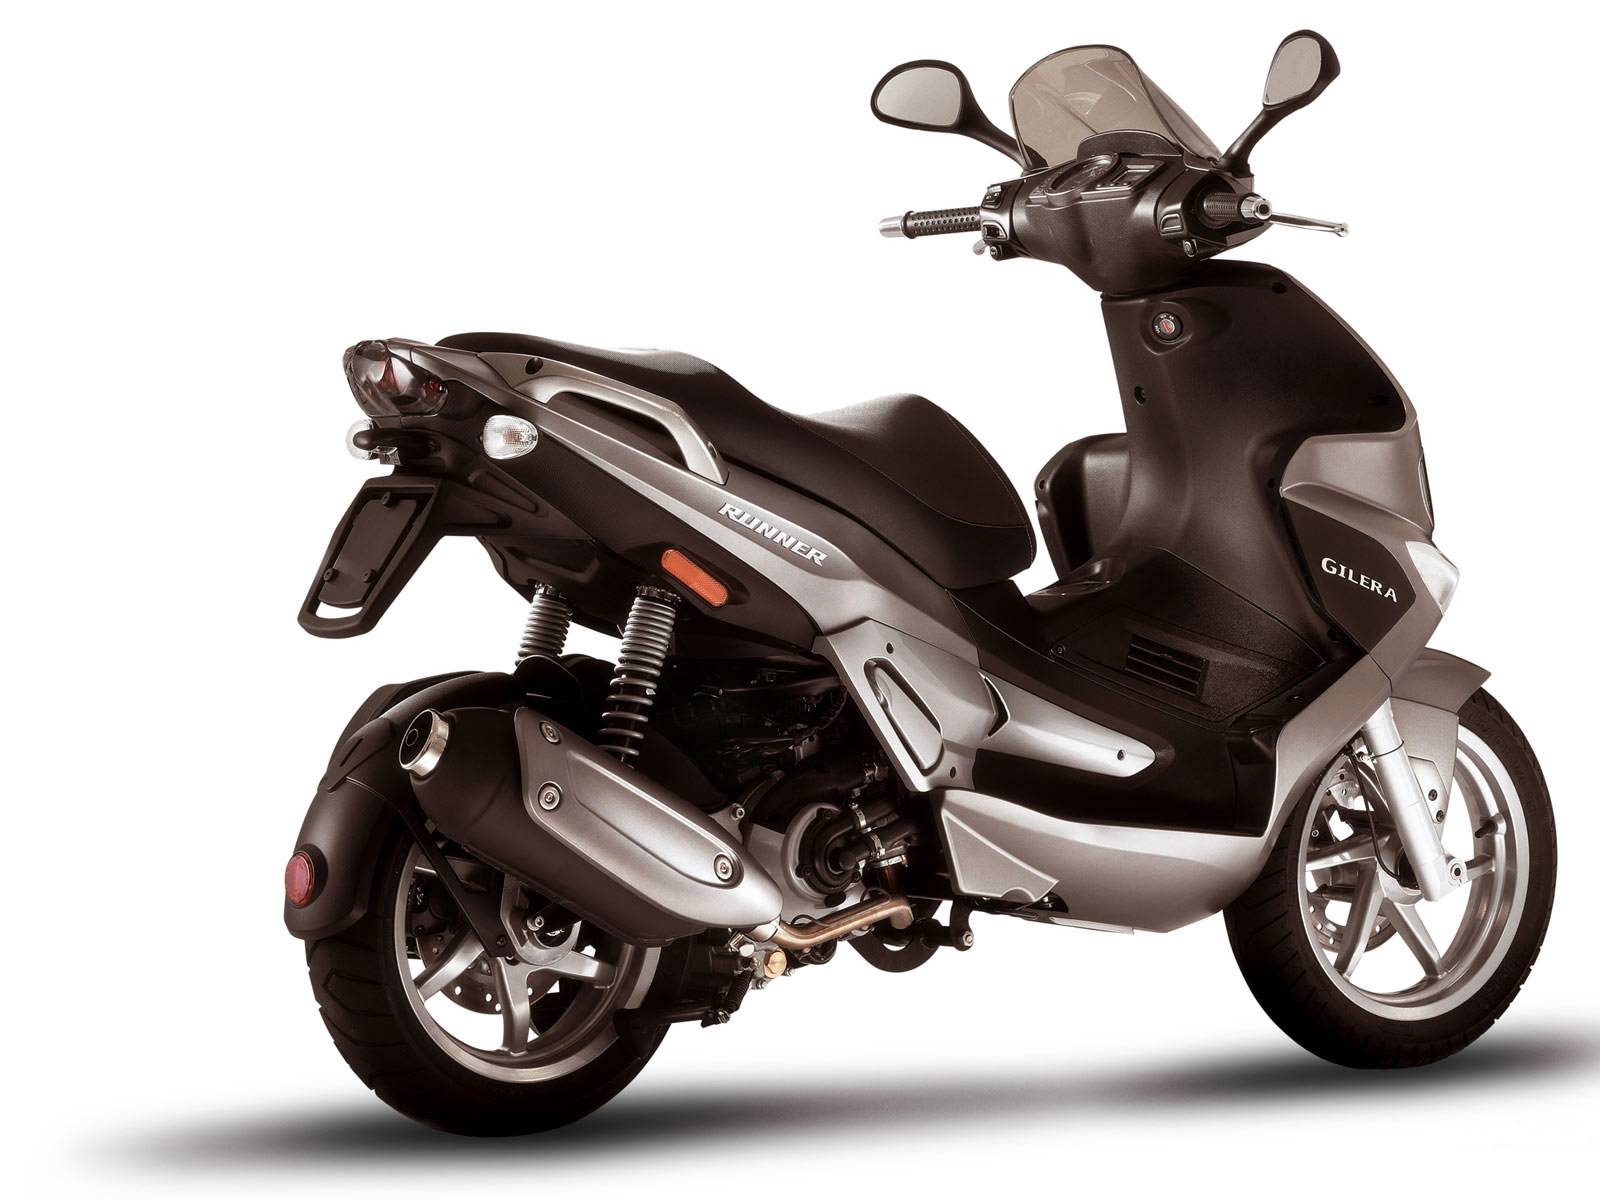 gilera wallpaper (Gilera Runner)